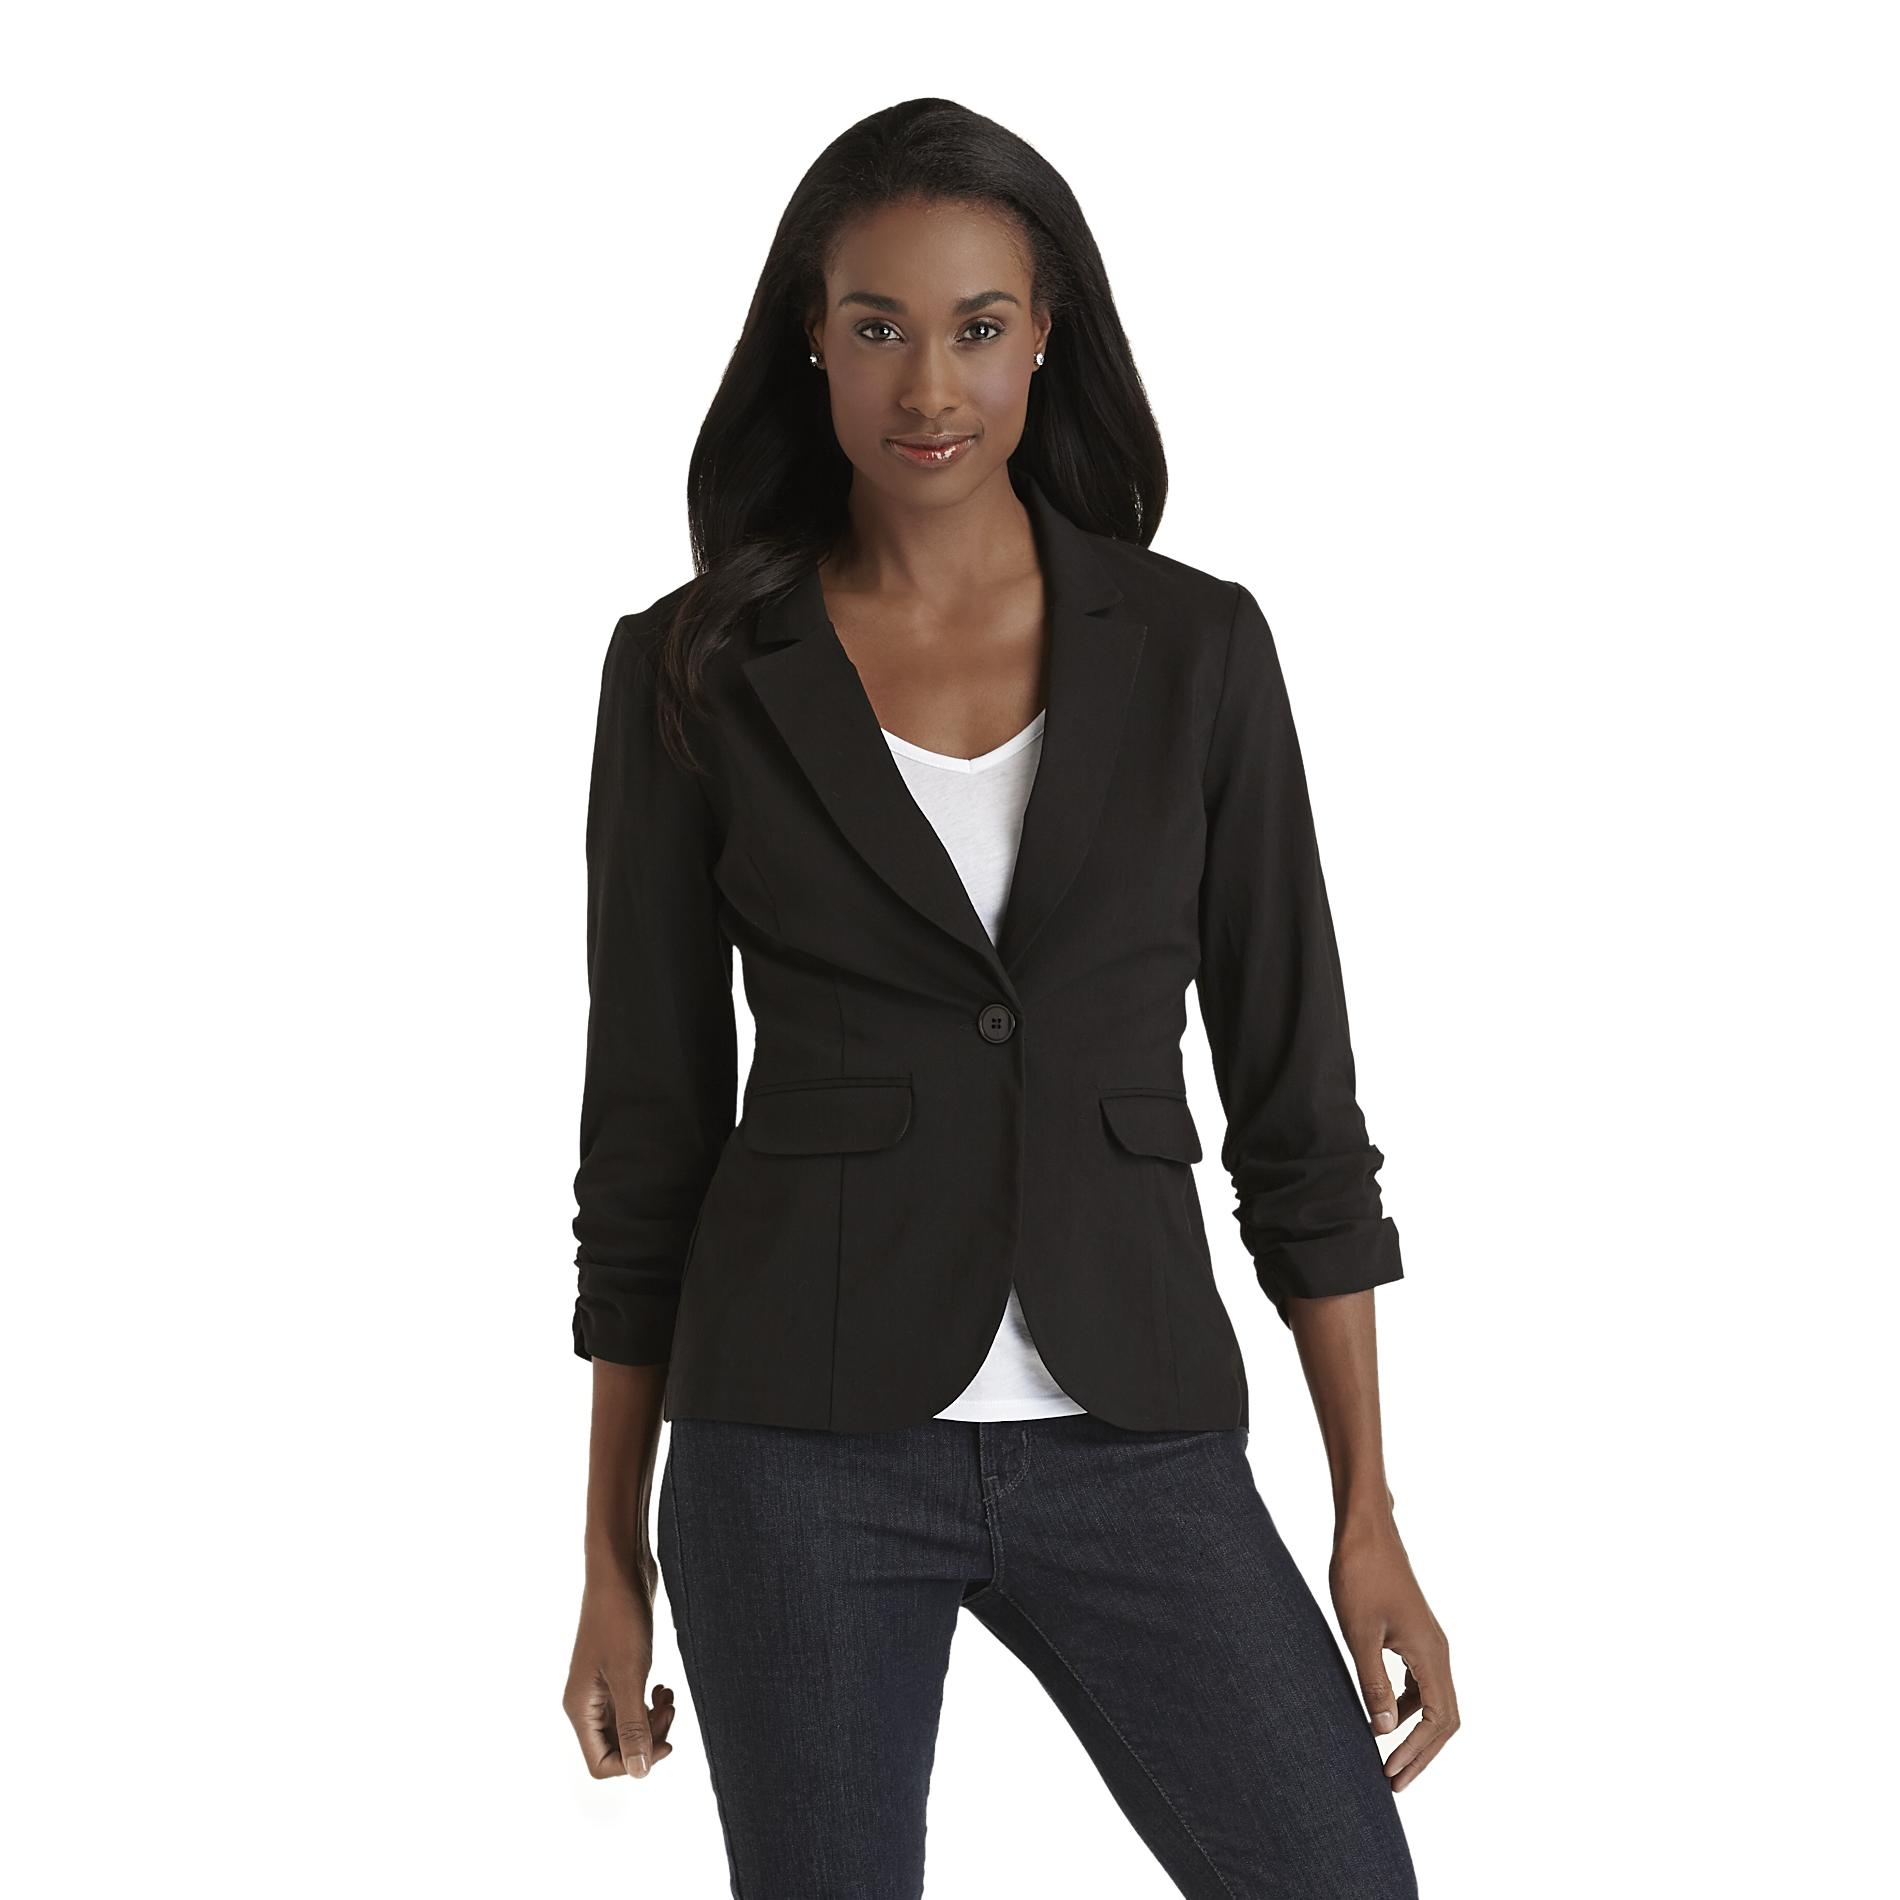 Metaphor Women's Ruched Blazer at Sears.com